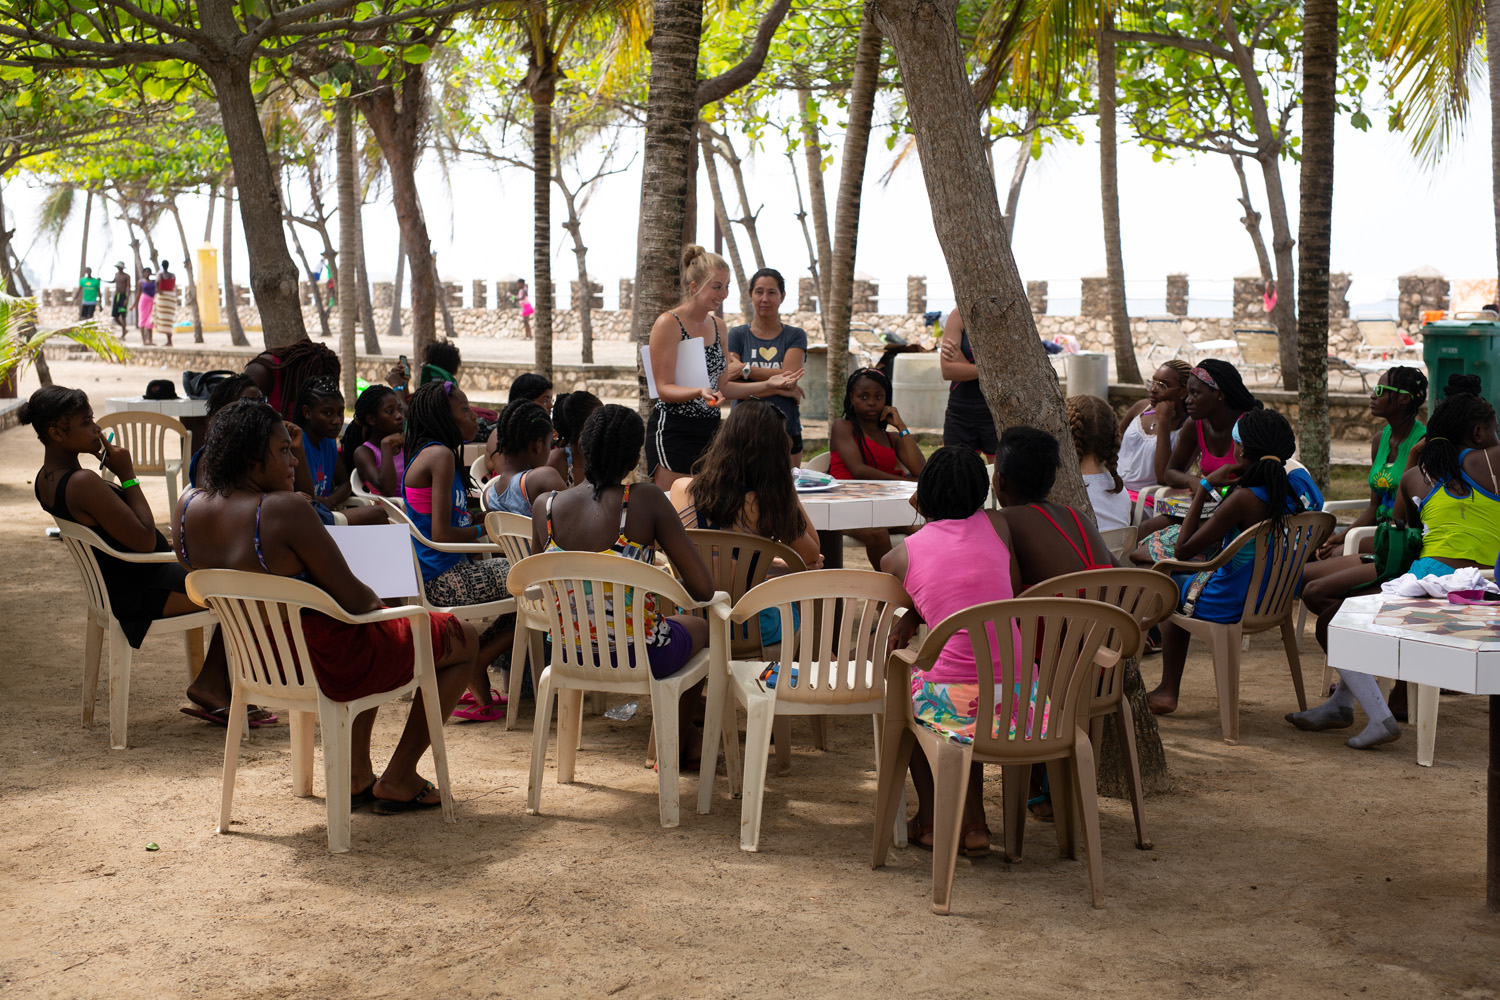 Small group discussion time at the beach.